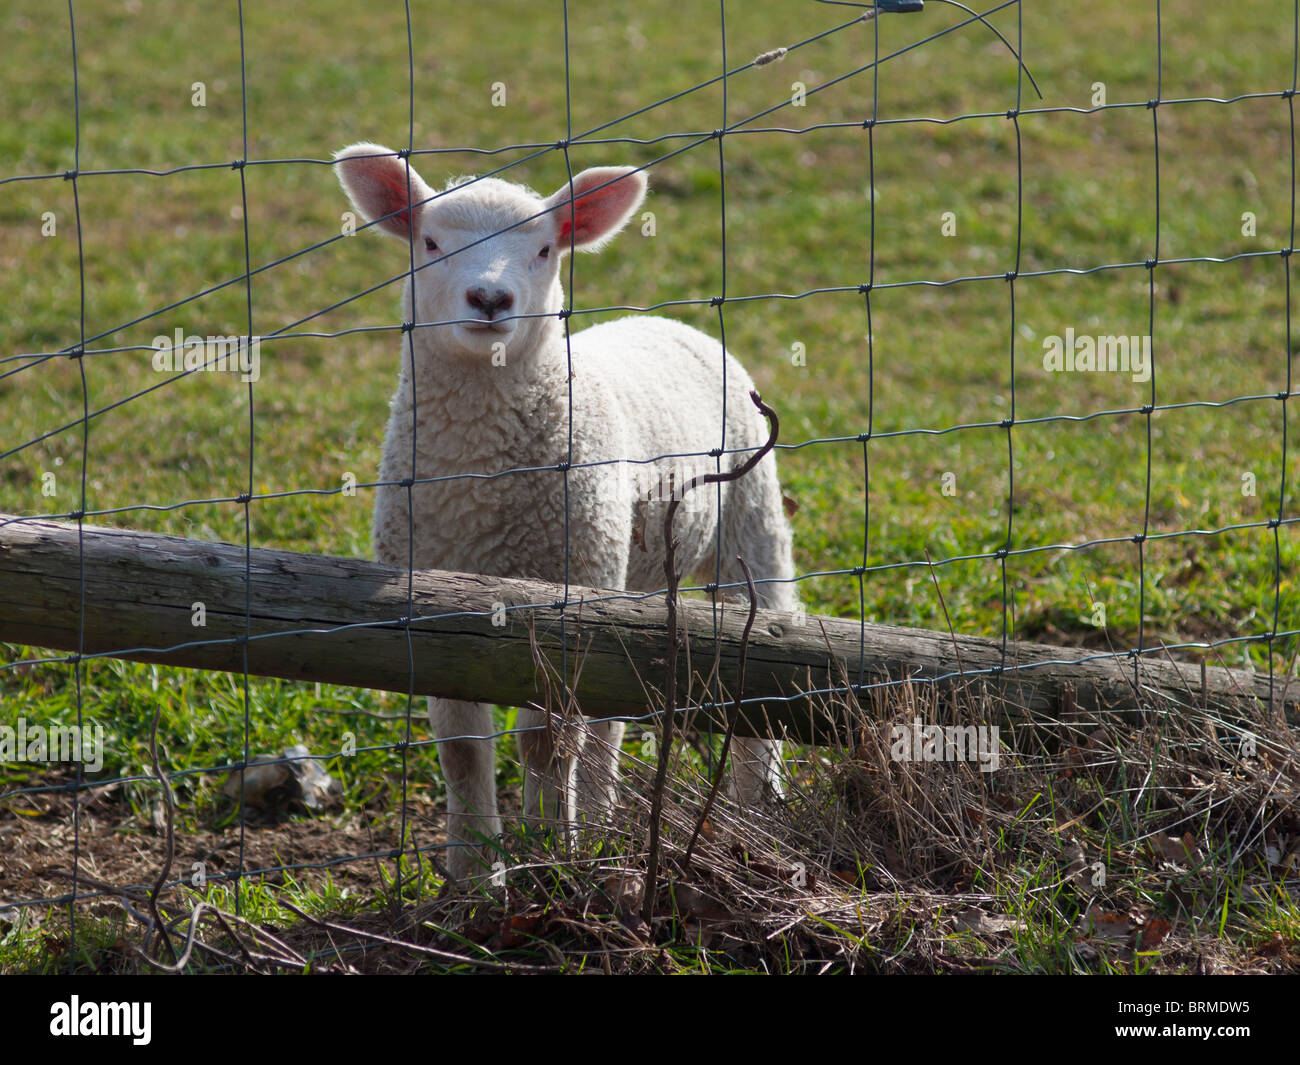 An English Lamb behind a wire fence - Stock Image